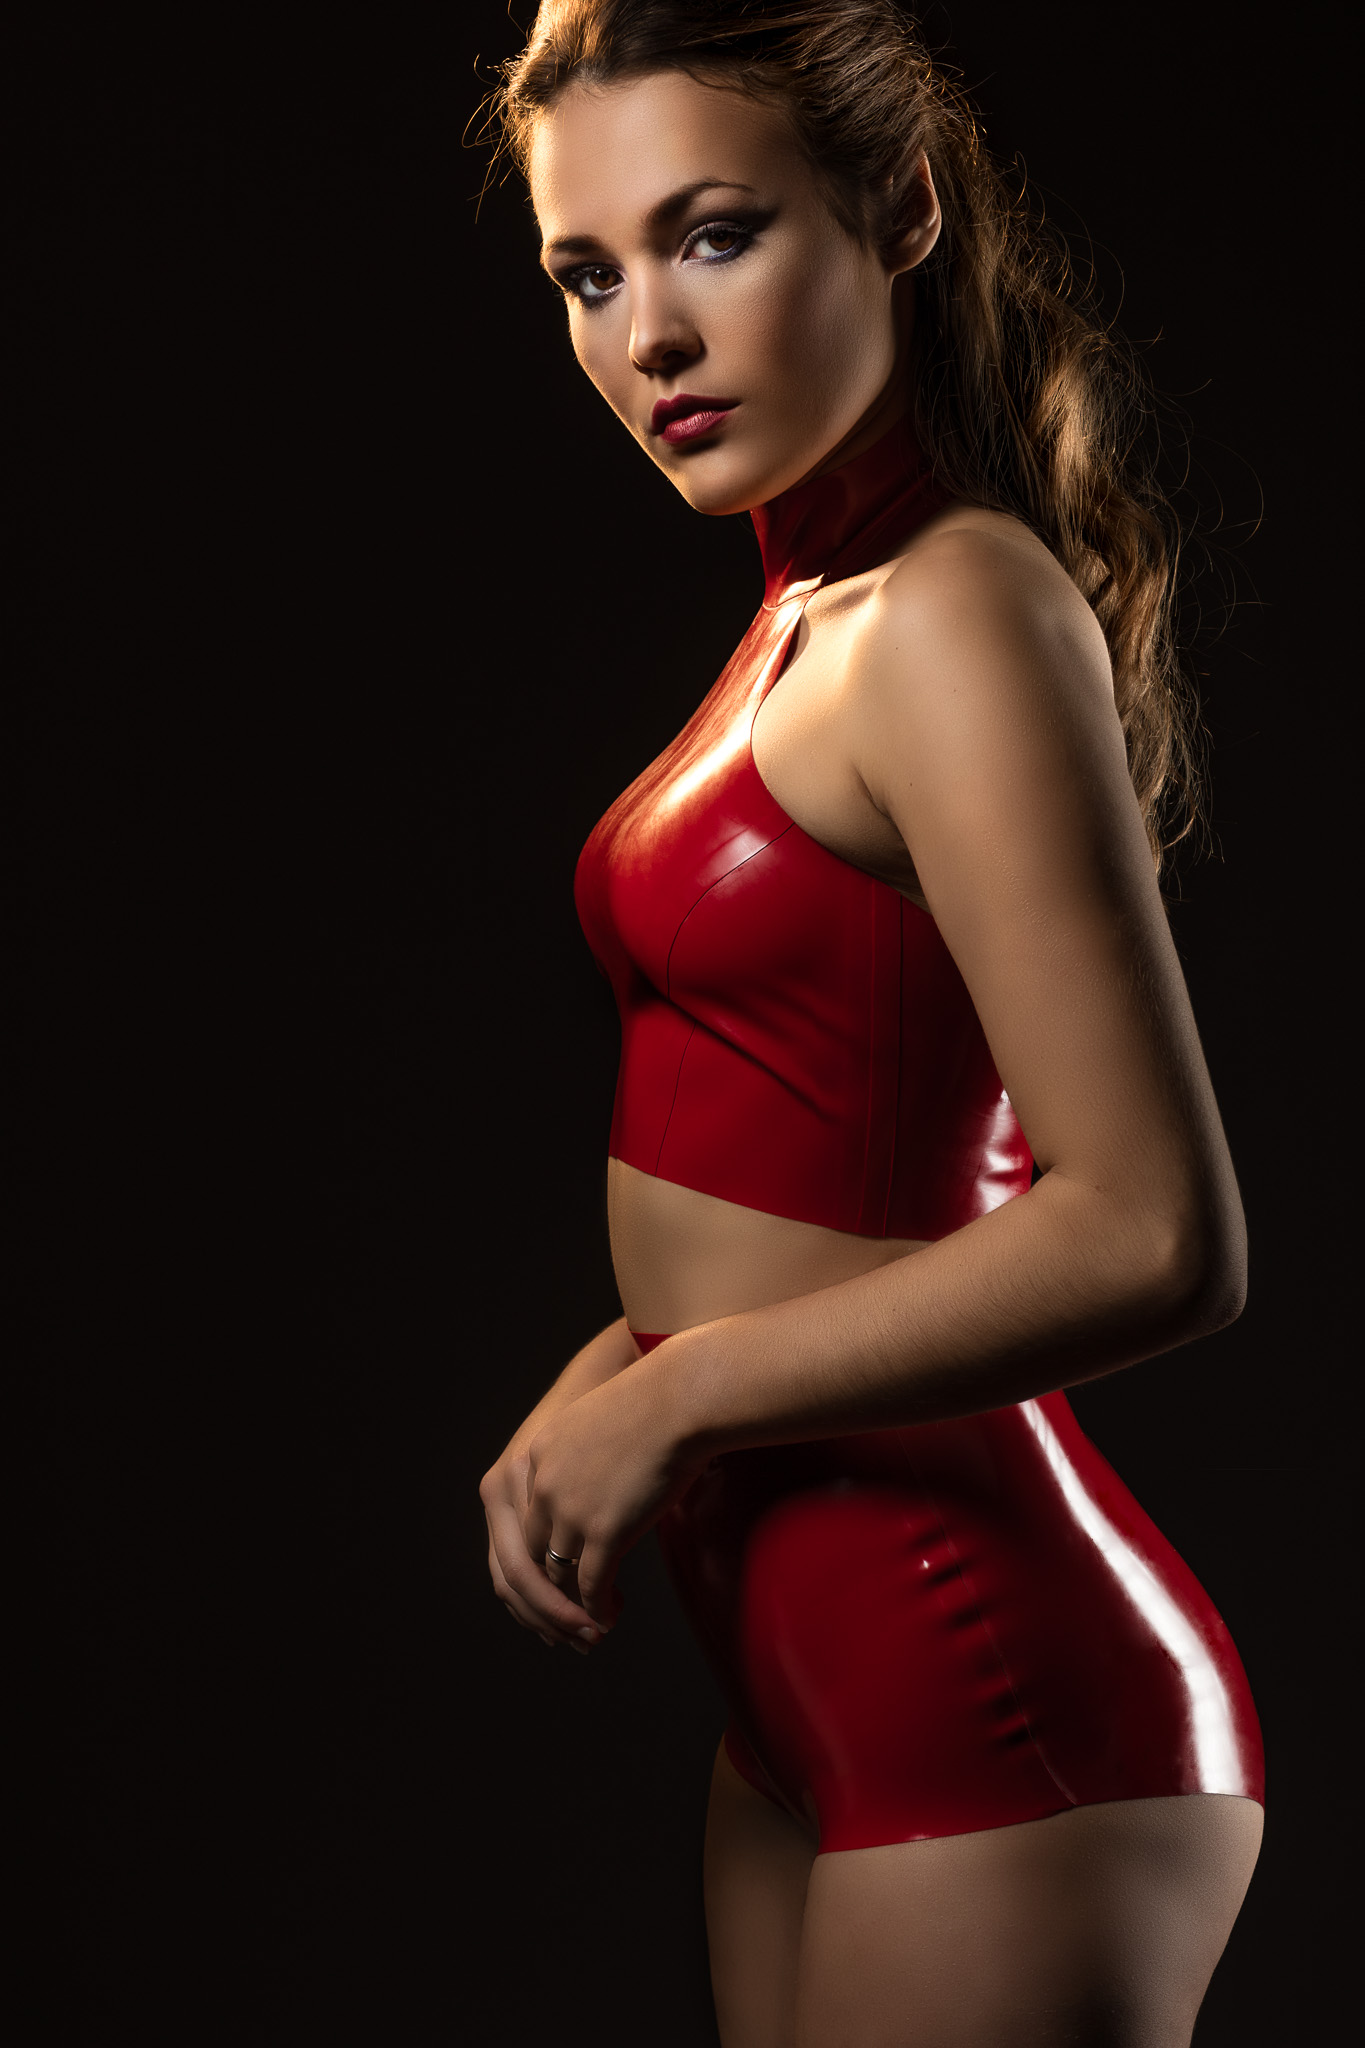 Model Shannety in Latex Lingerie by William Wilde